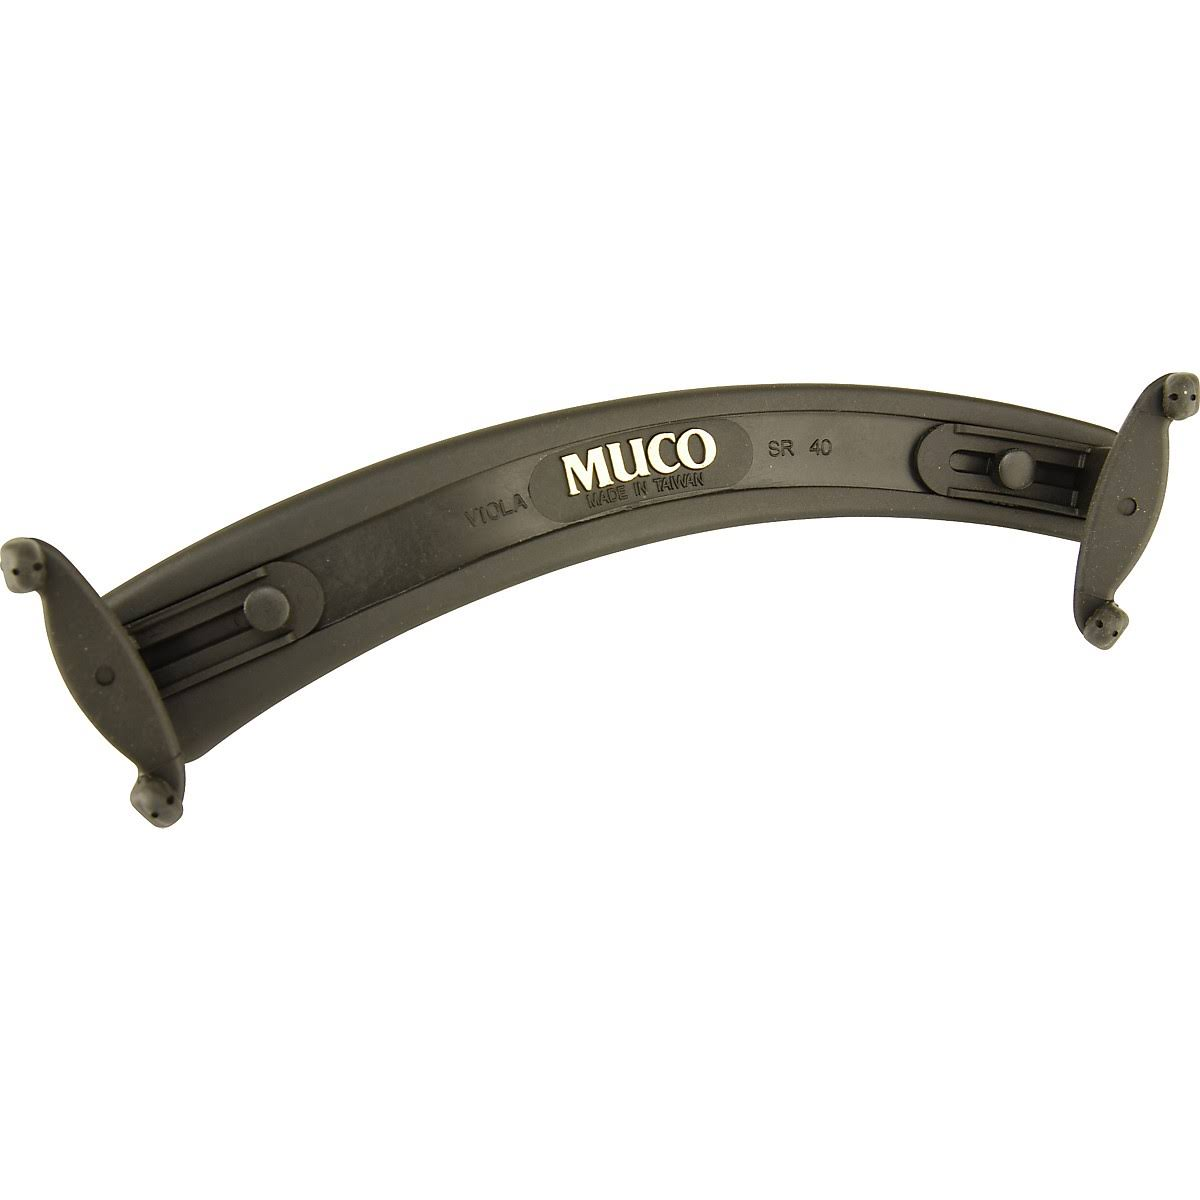 Otto Musica Muco Easy Model Shoulder Rest